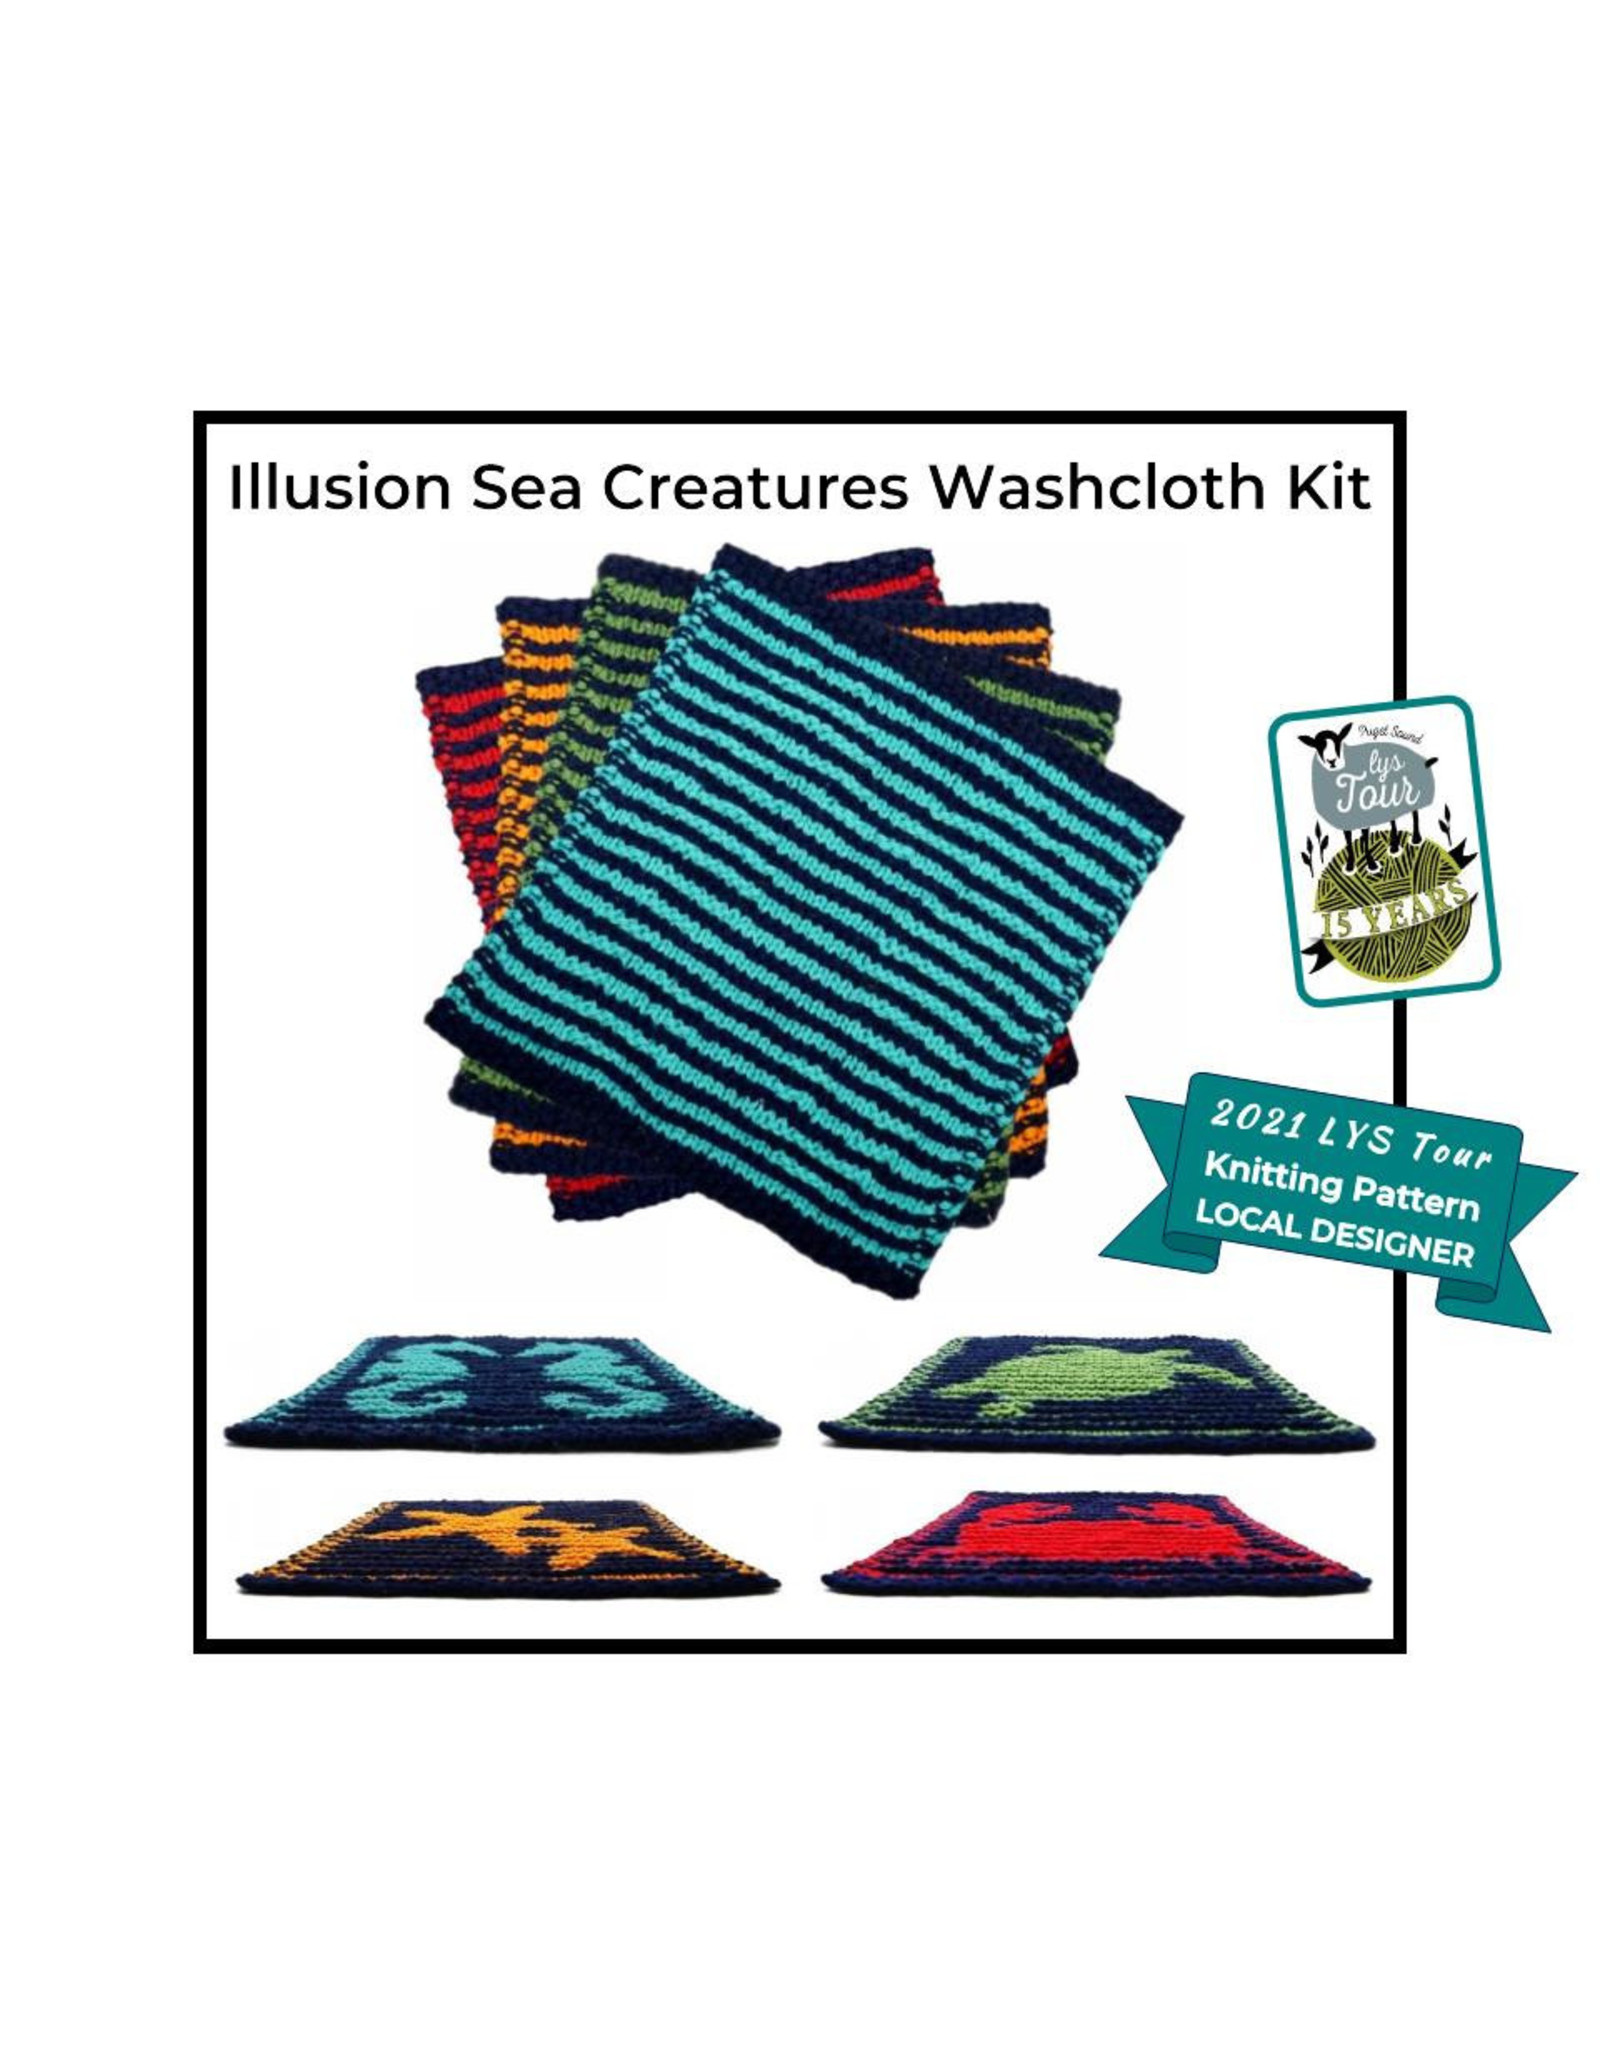 Stranded by the Sea 2021 LYS Tour - Illusion Sea Creatures Knit Kit